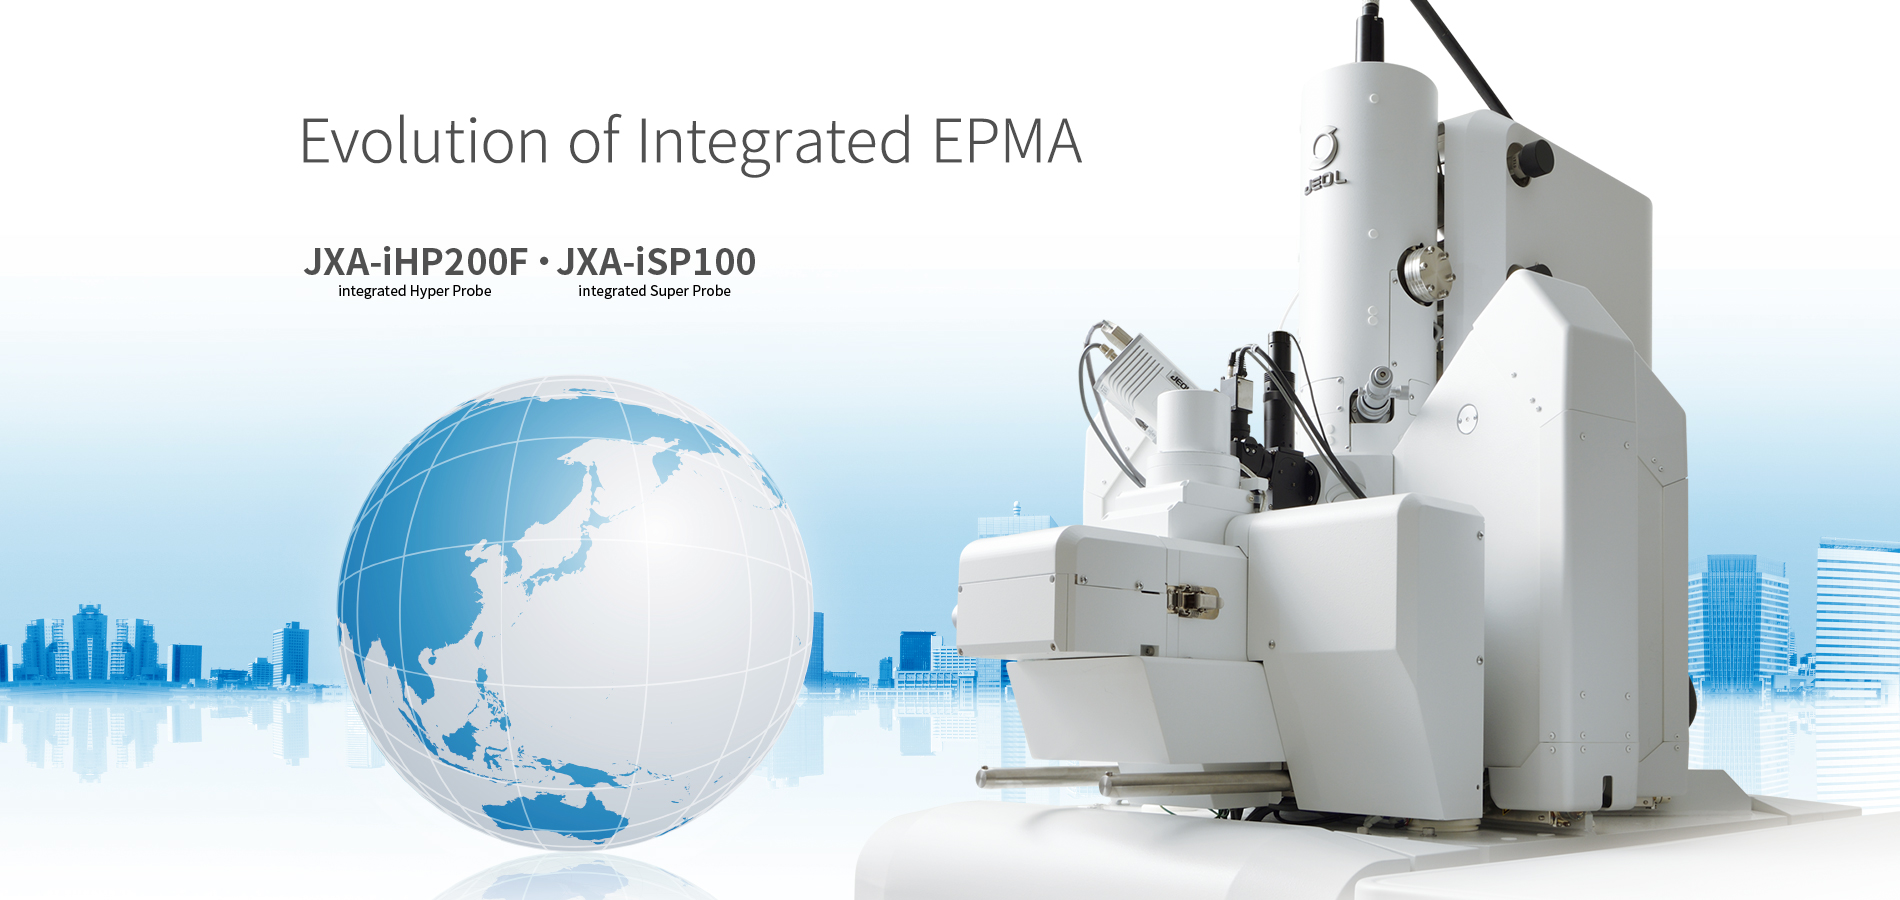 Evolution of Integrated EPMA